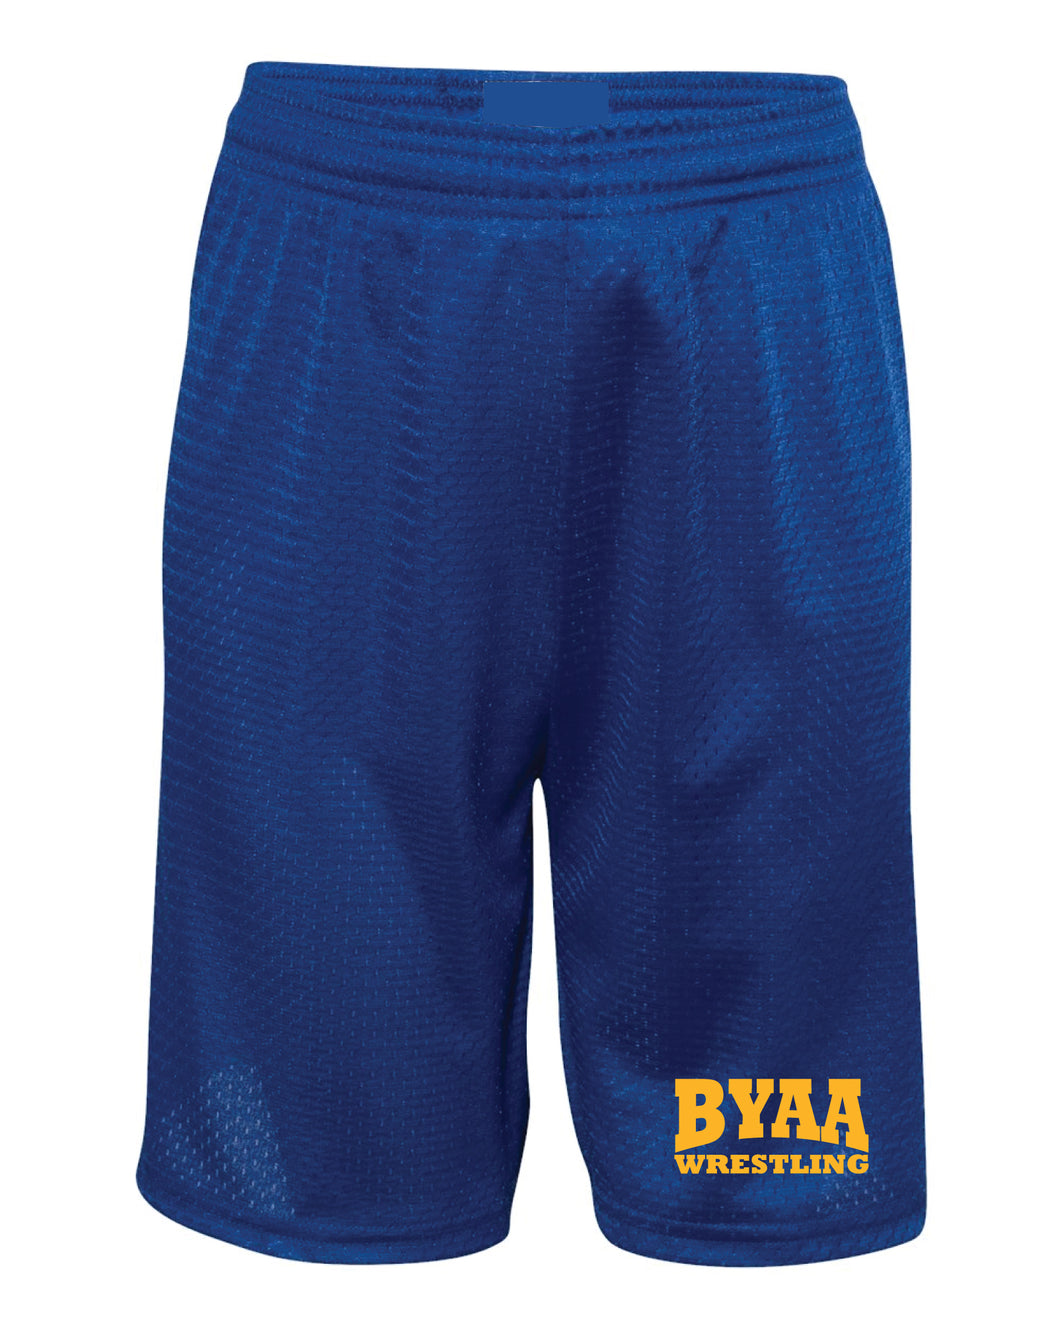 BYAA Tech Shorts - Royal - 5KounT